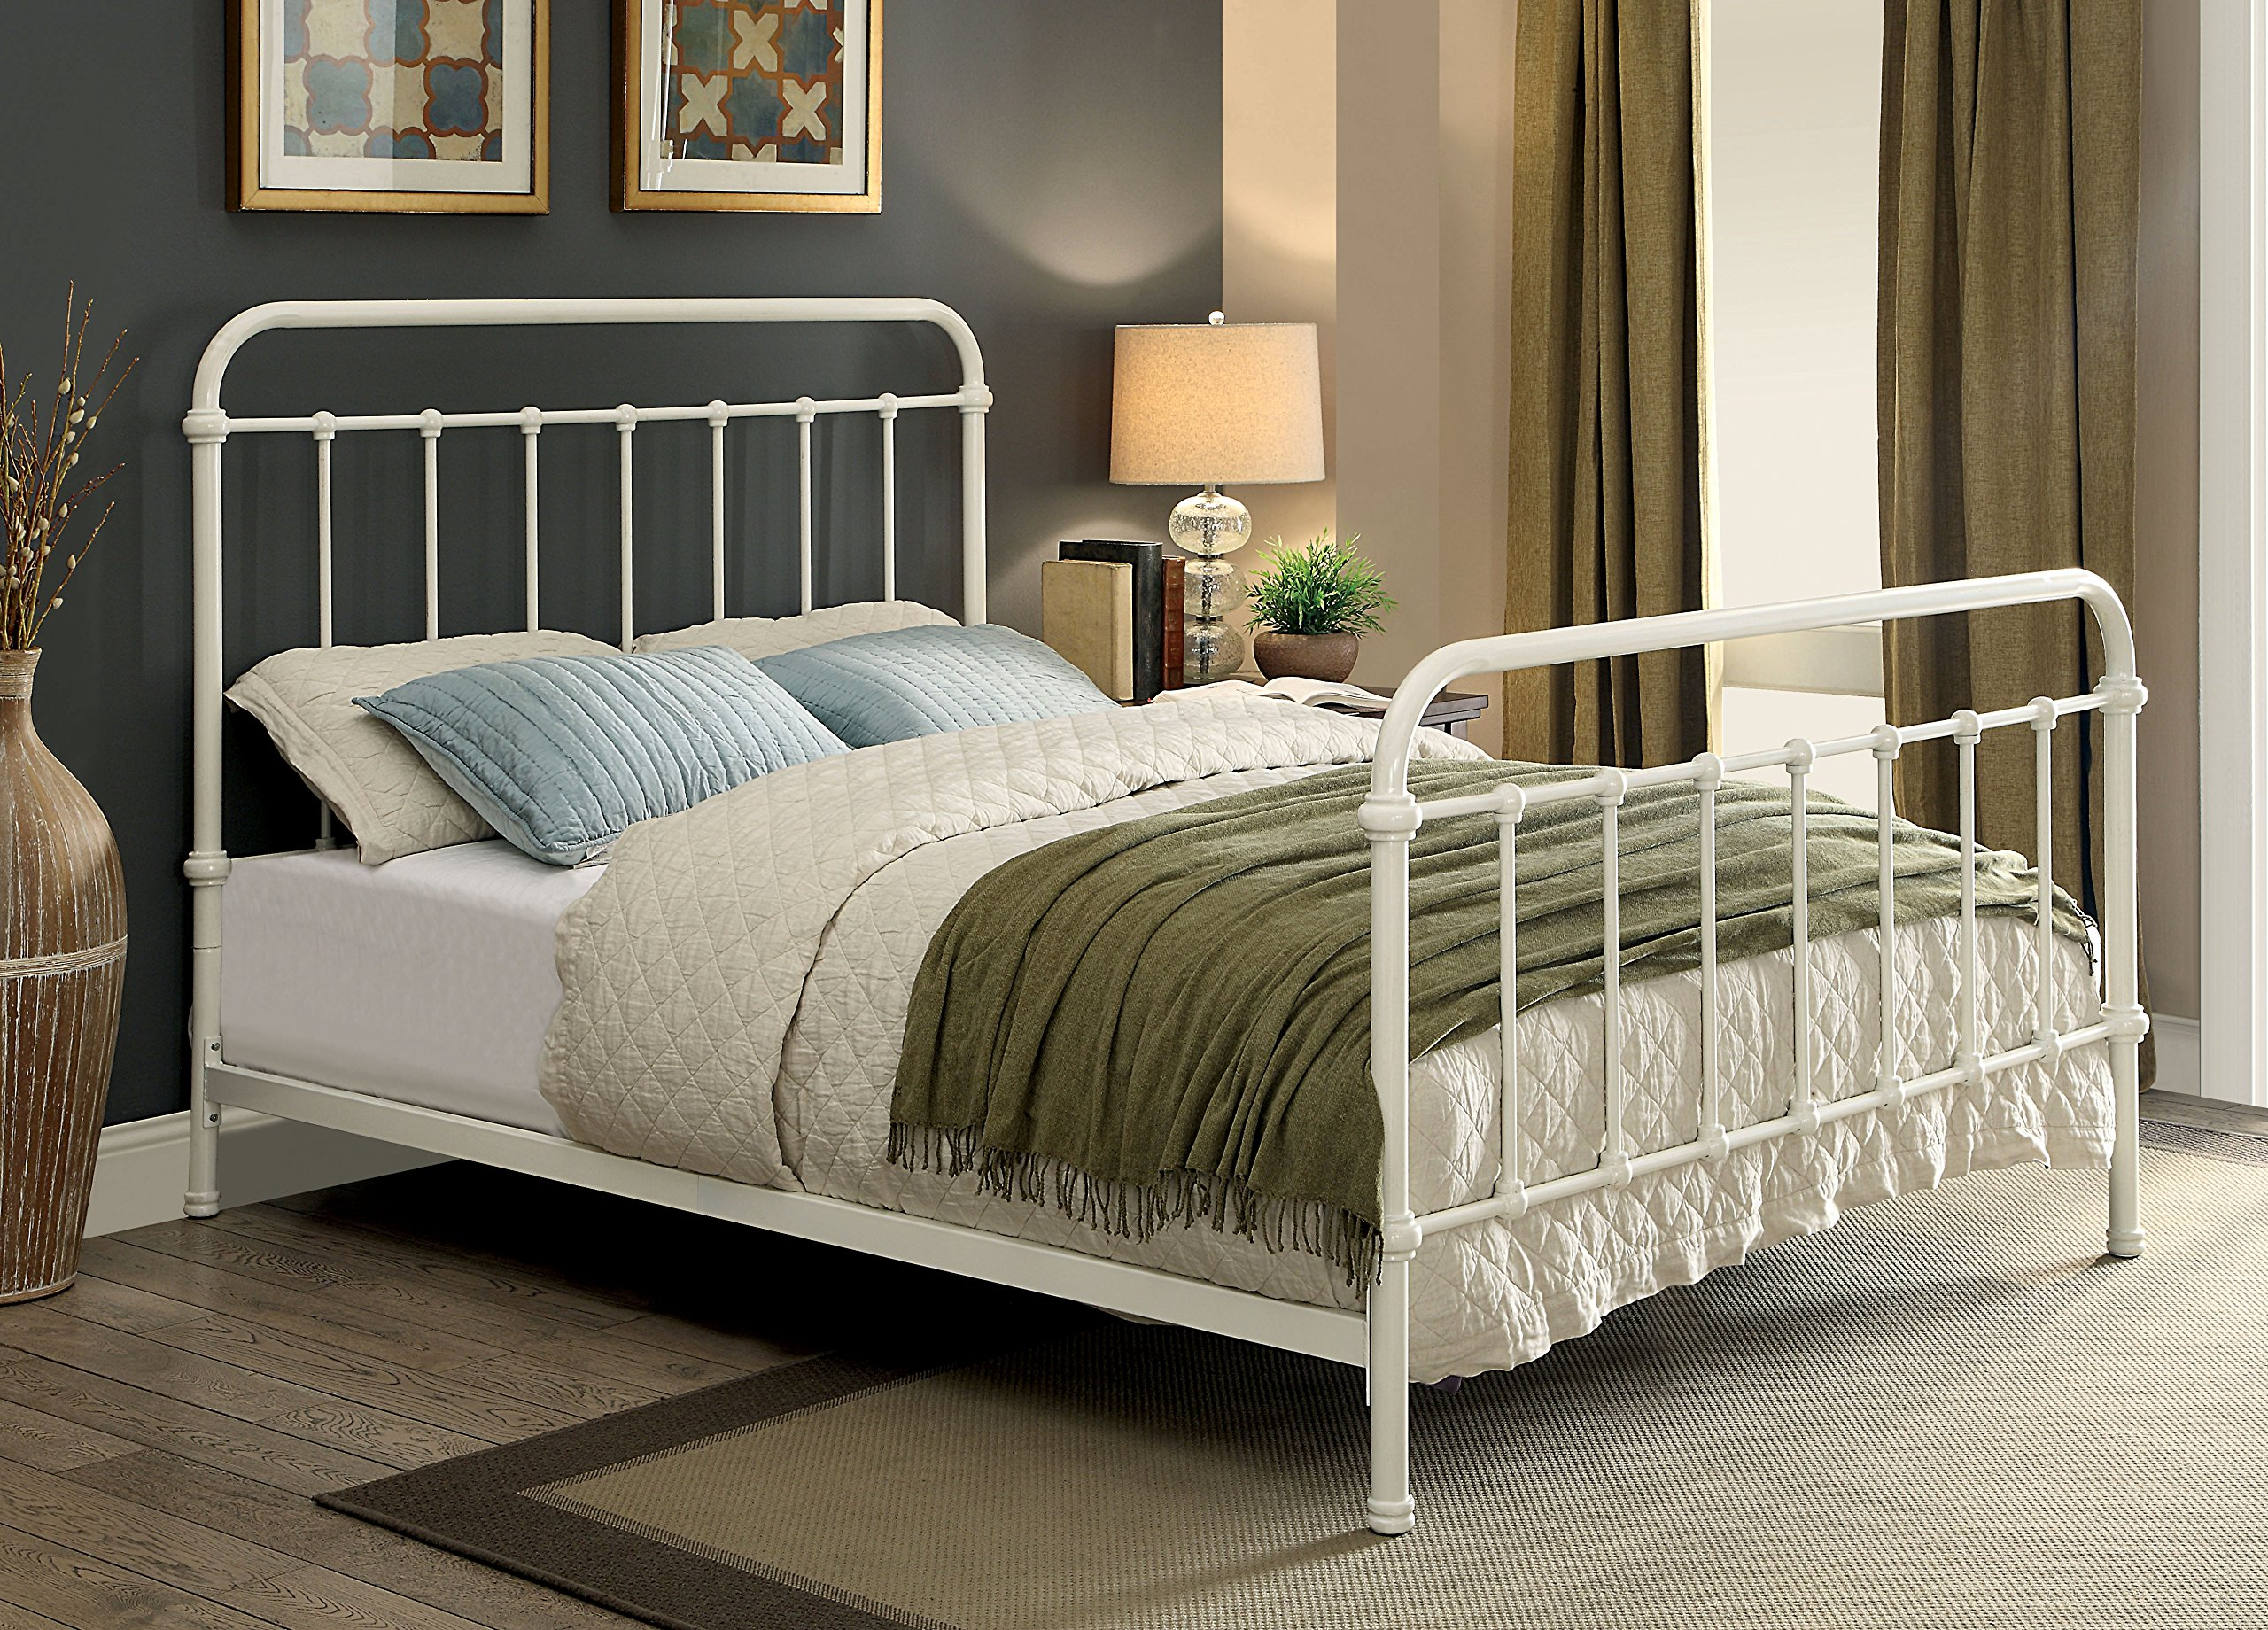 White Metal Bed Queen: Furniture Of America Overtown Metal Bed, Queen, Vintage White